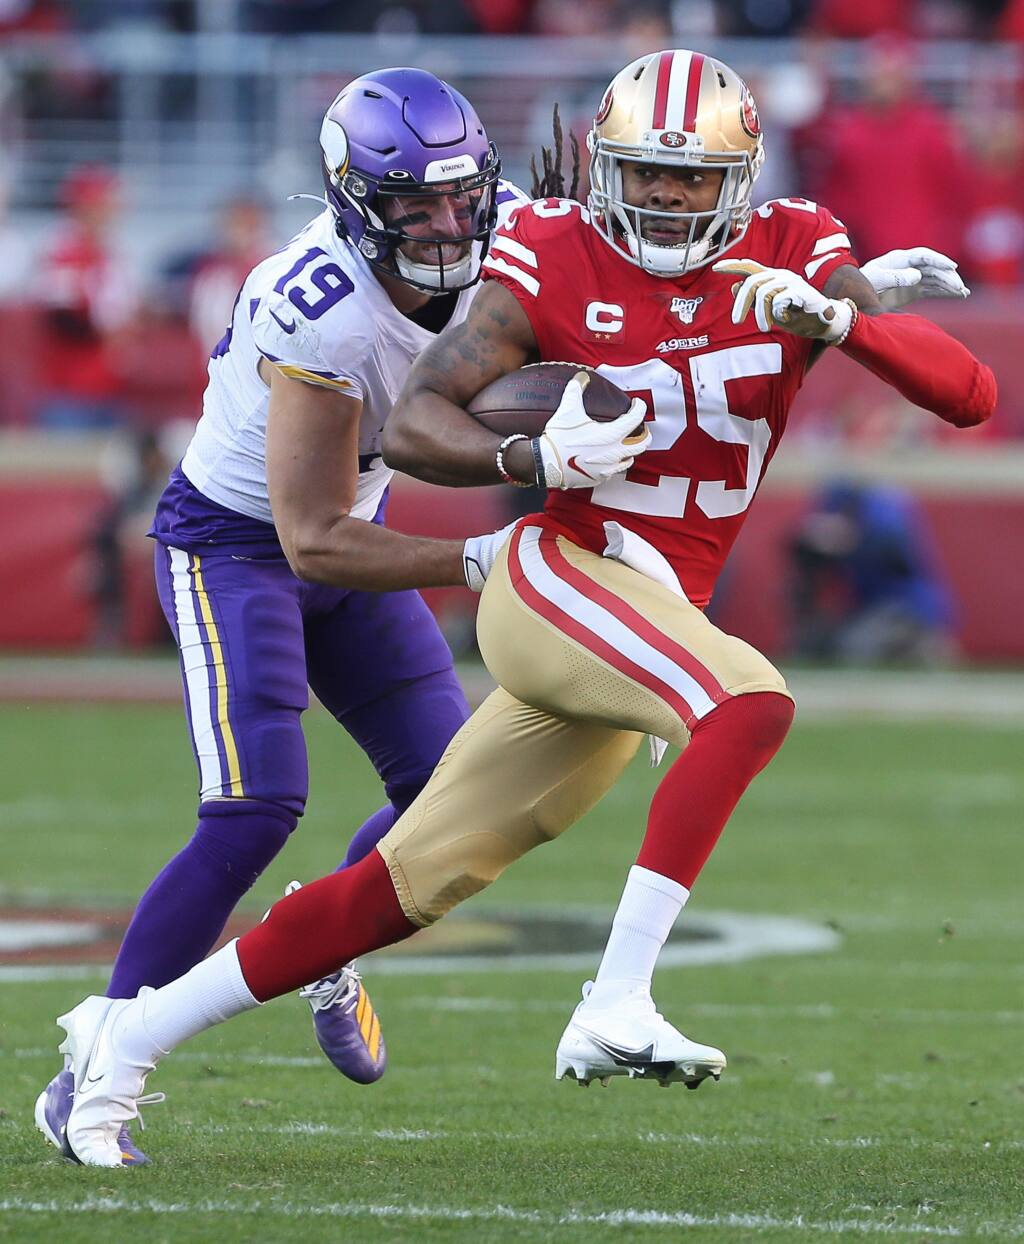 San Francisco 49ers cornerback Richard Sherman runs after intercepting a pass intended for Minnesota Vikings wide receiver Adam Thielen during their NFC divisional playoff game at Levi's Stadium in Santa Clara on Saturday, January 11, 2020. The 49ers defeated the Vikings 27-10.(Christopher Chung/ The Press Democrat)